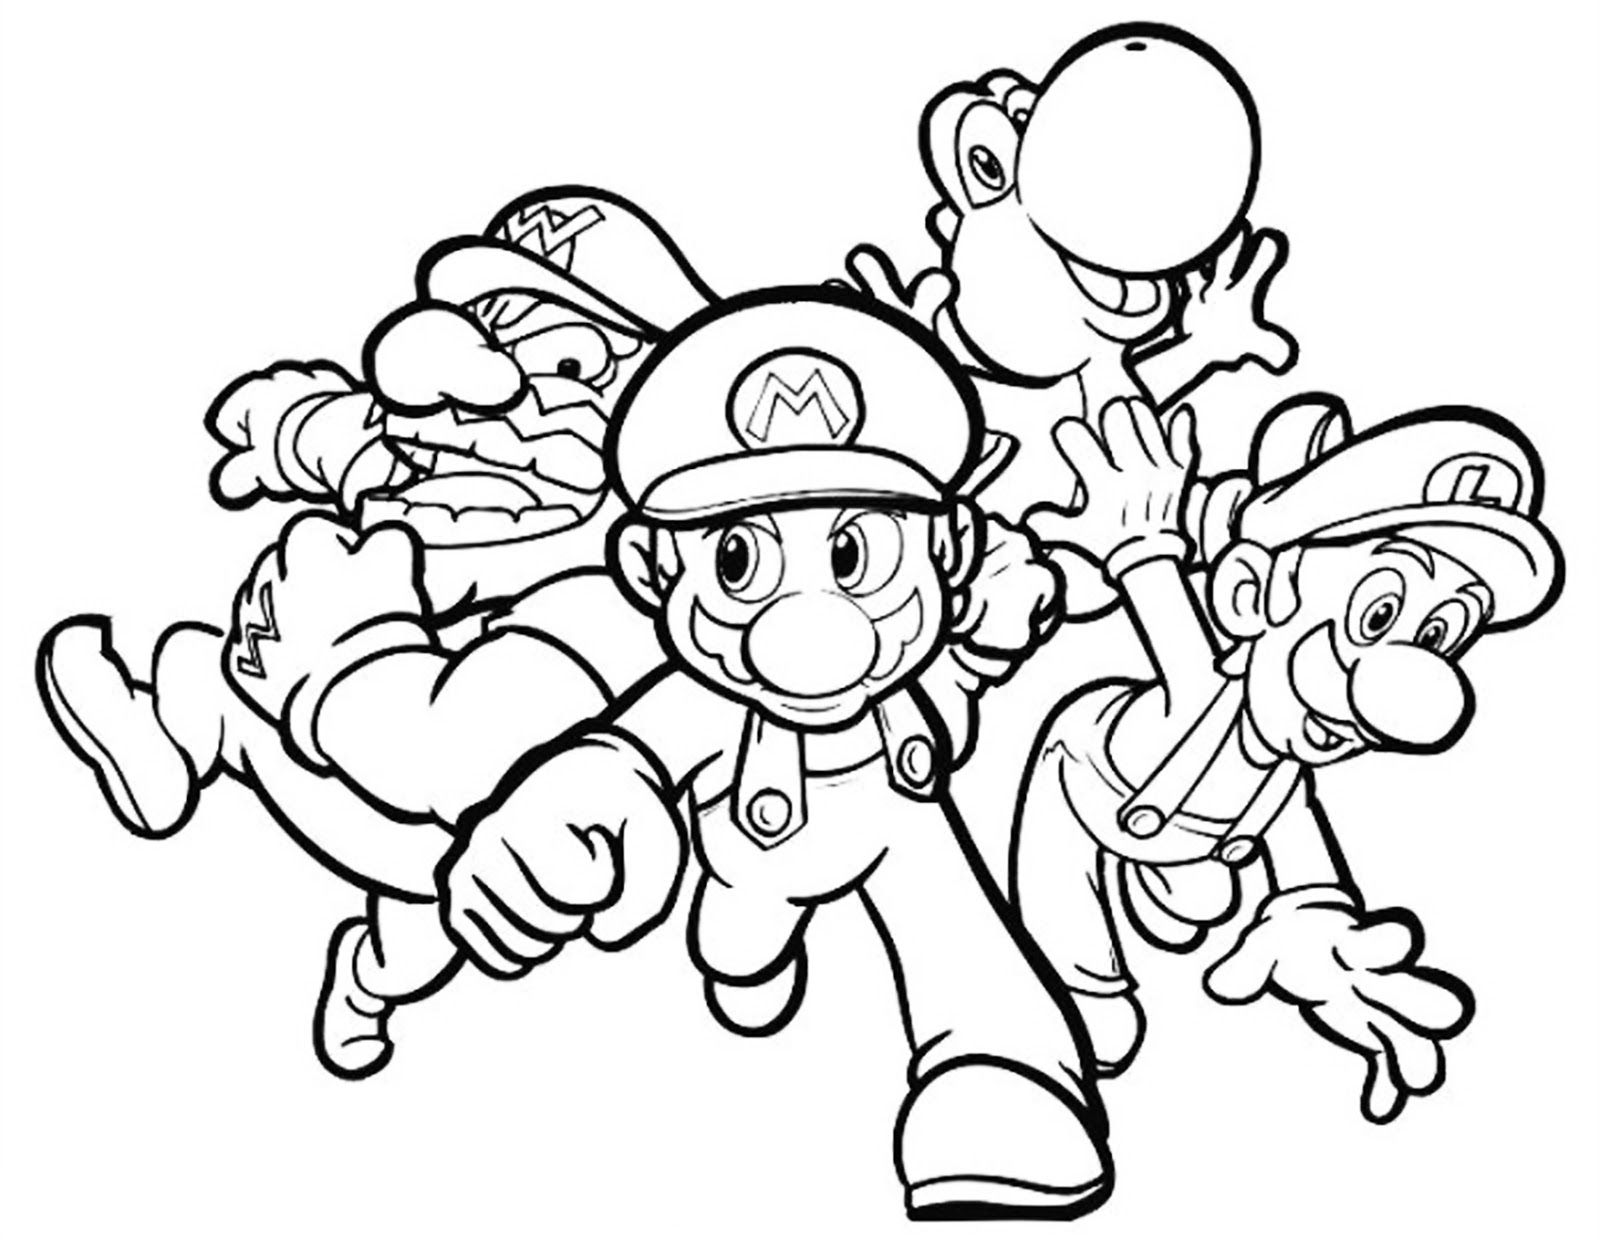 12 30 15 4 kids coloring pages pinterest latest games and